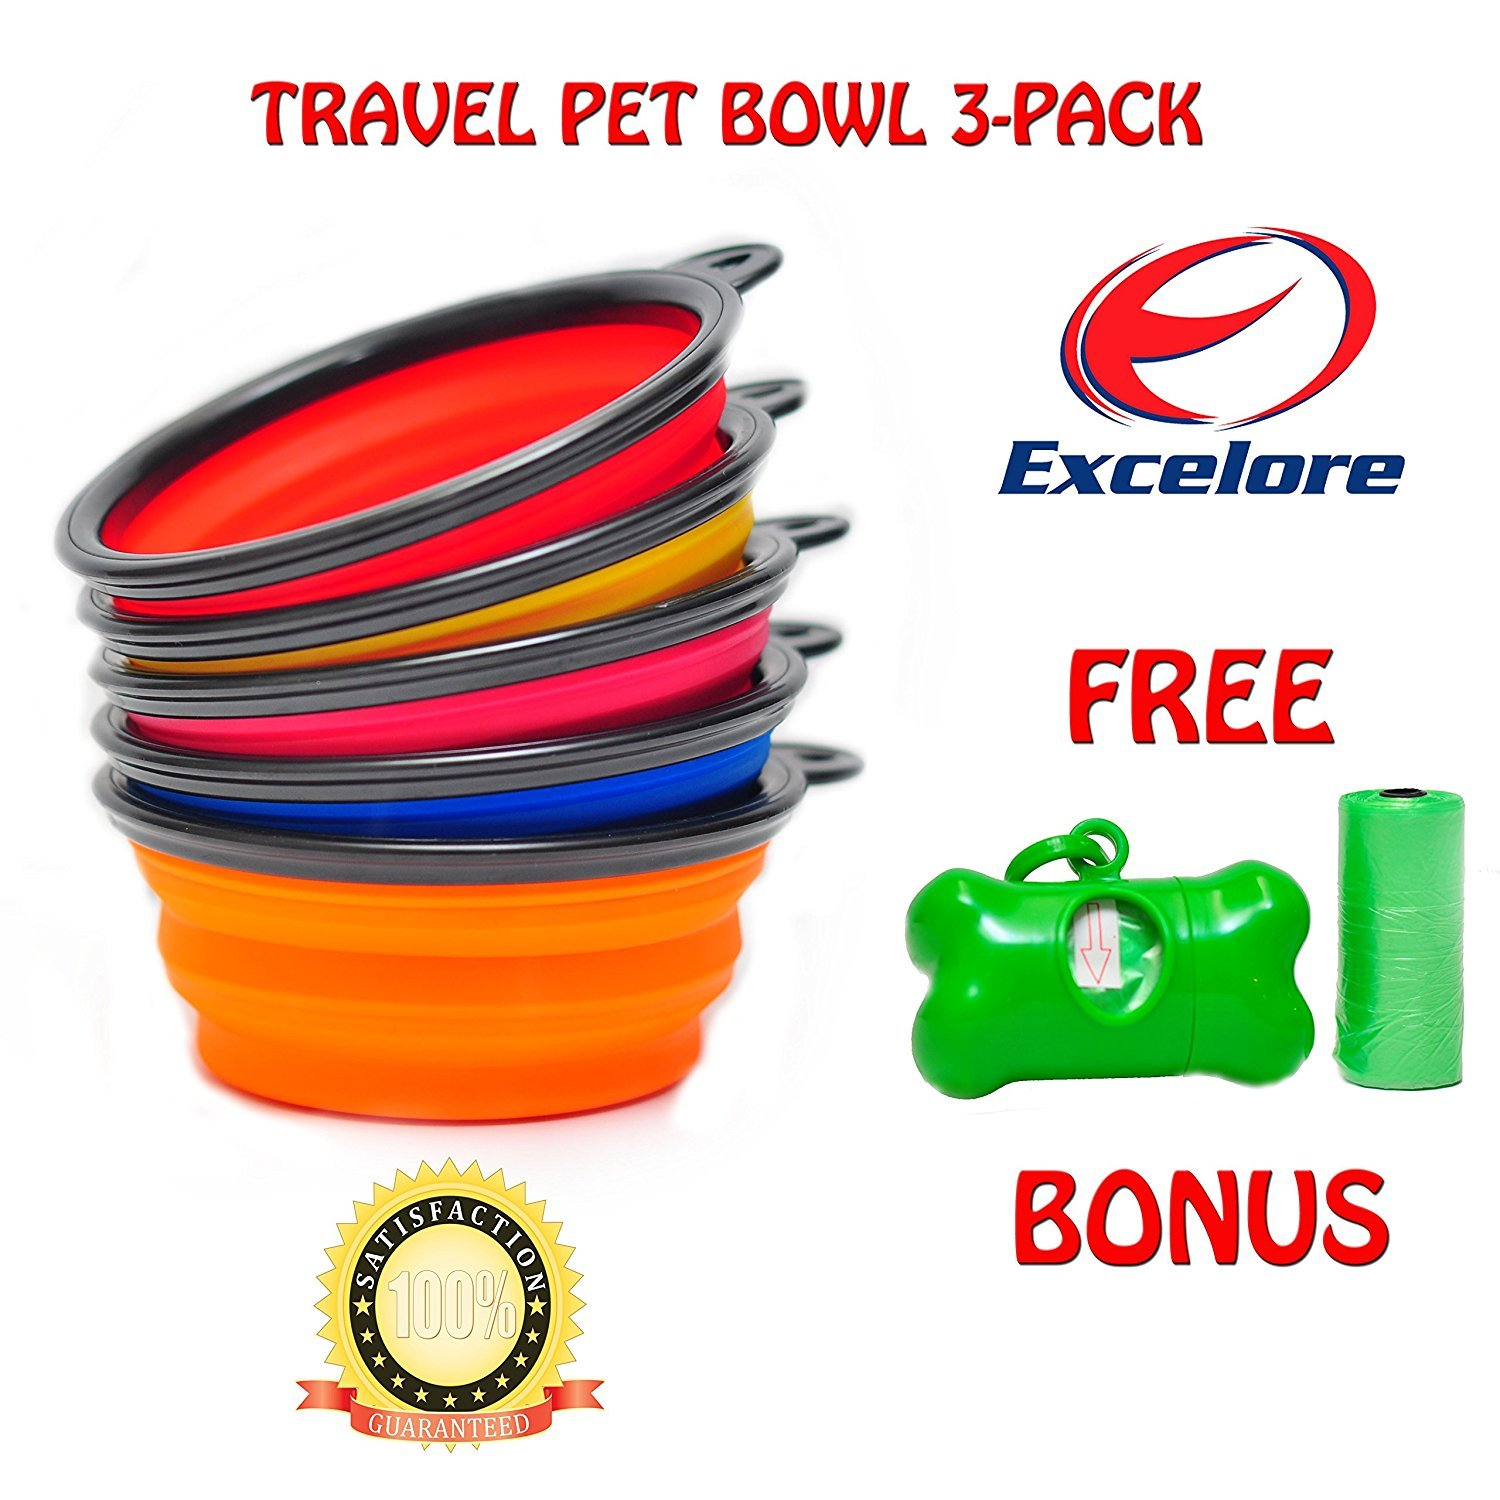 Excelore Travel Collapsible Dog Bowl with Waste Dispenser and 30 Poop Refill Bags, 3-Pack by Excelore